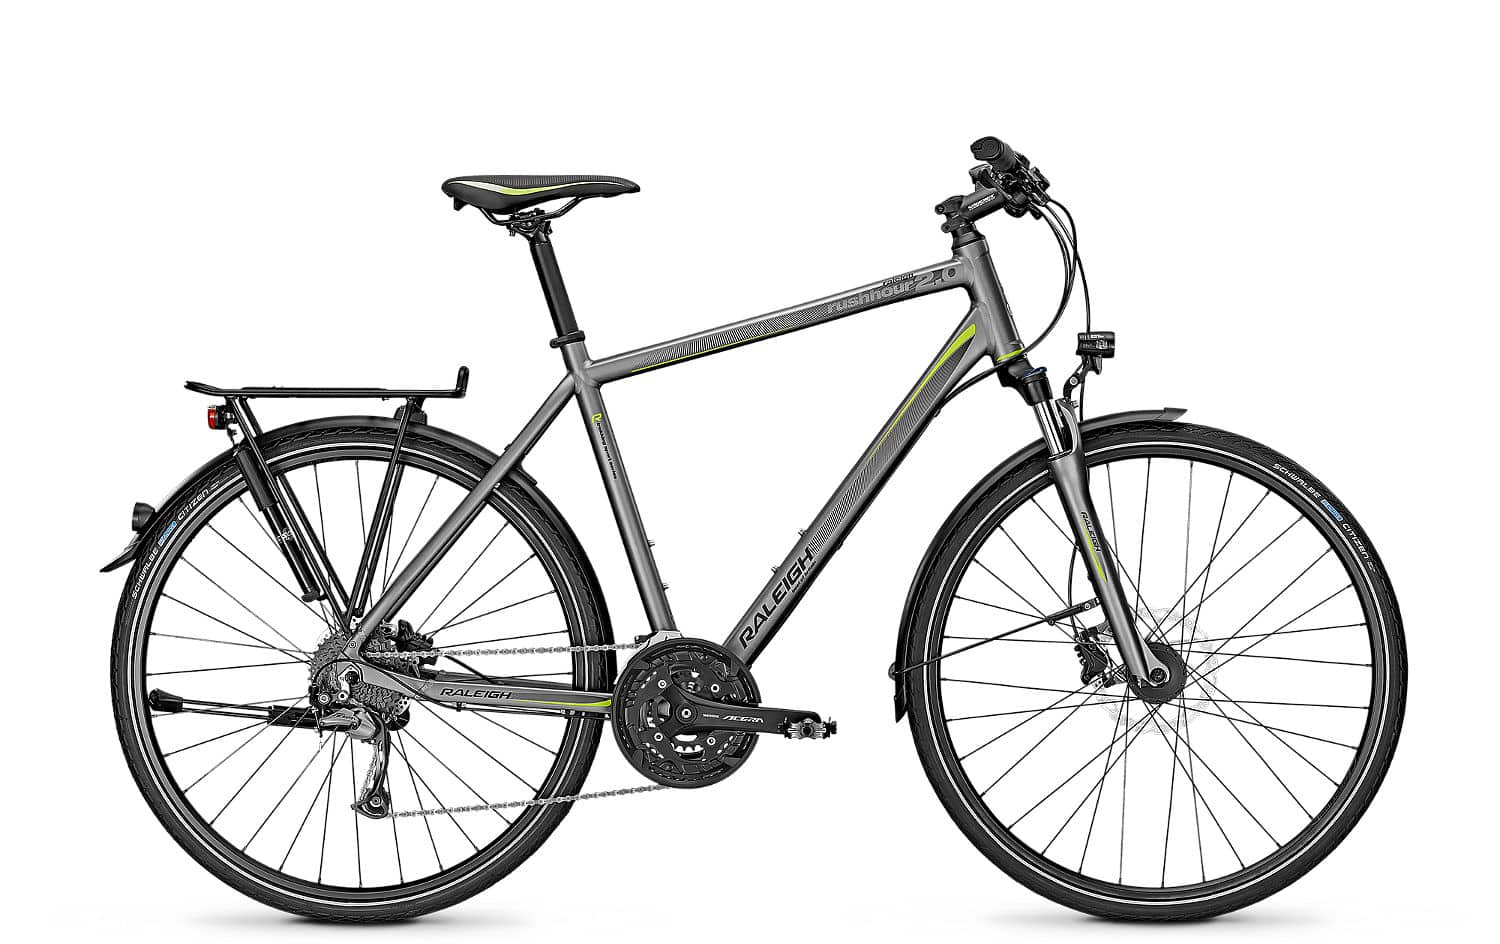 raleigh rushhour 2 0 disc trapez 2016 45 cm silver